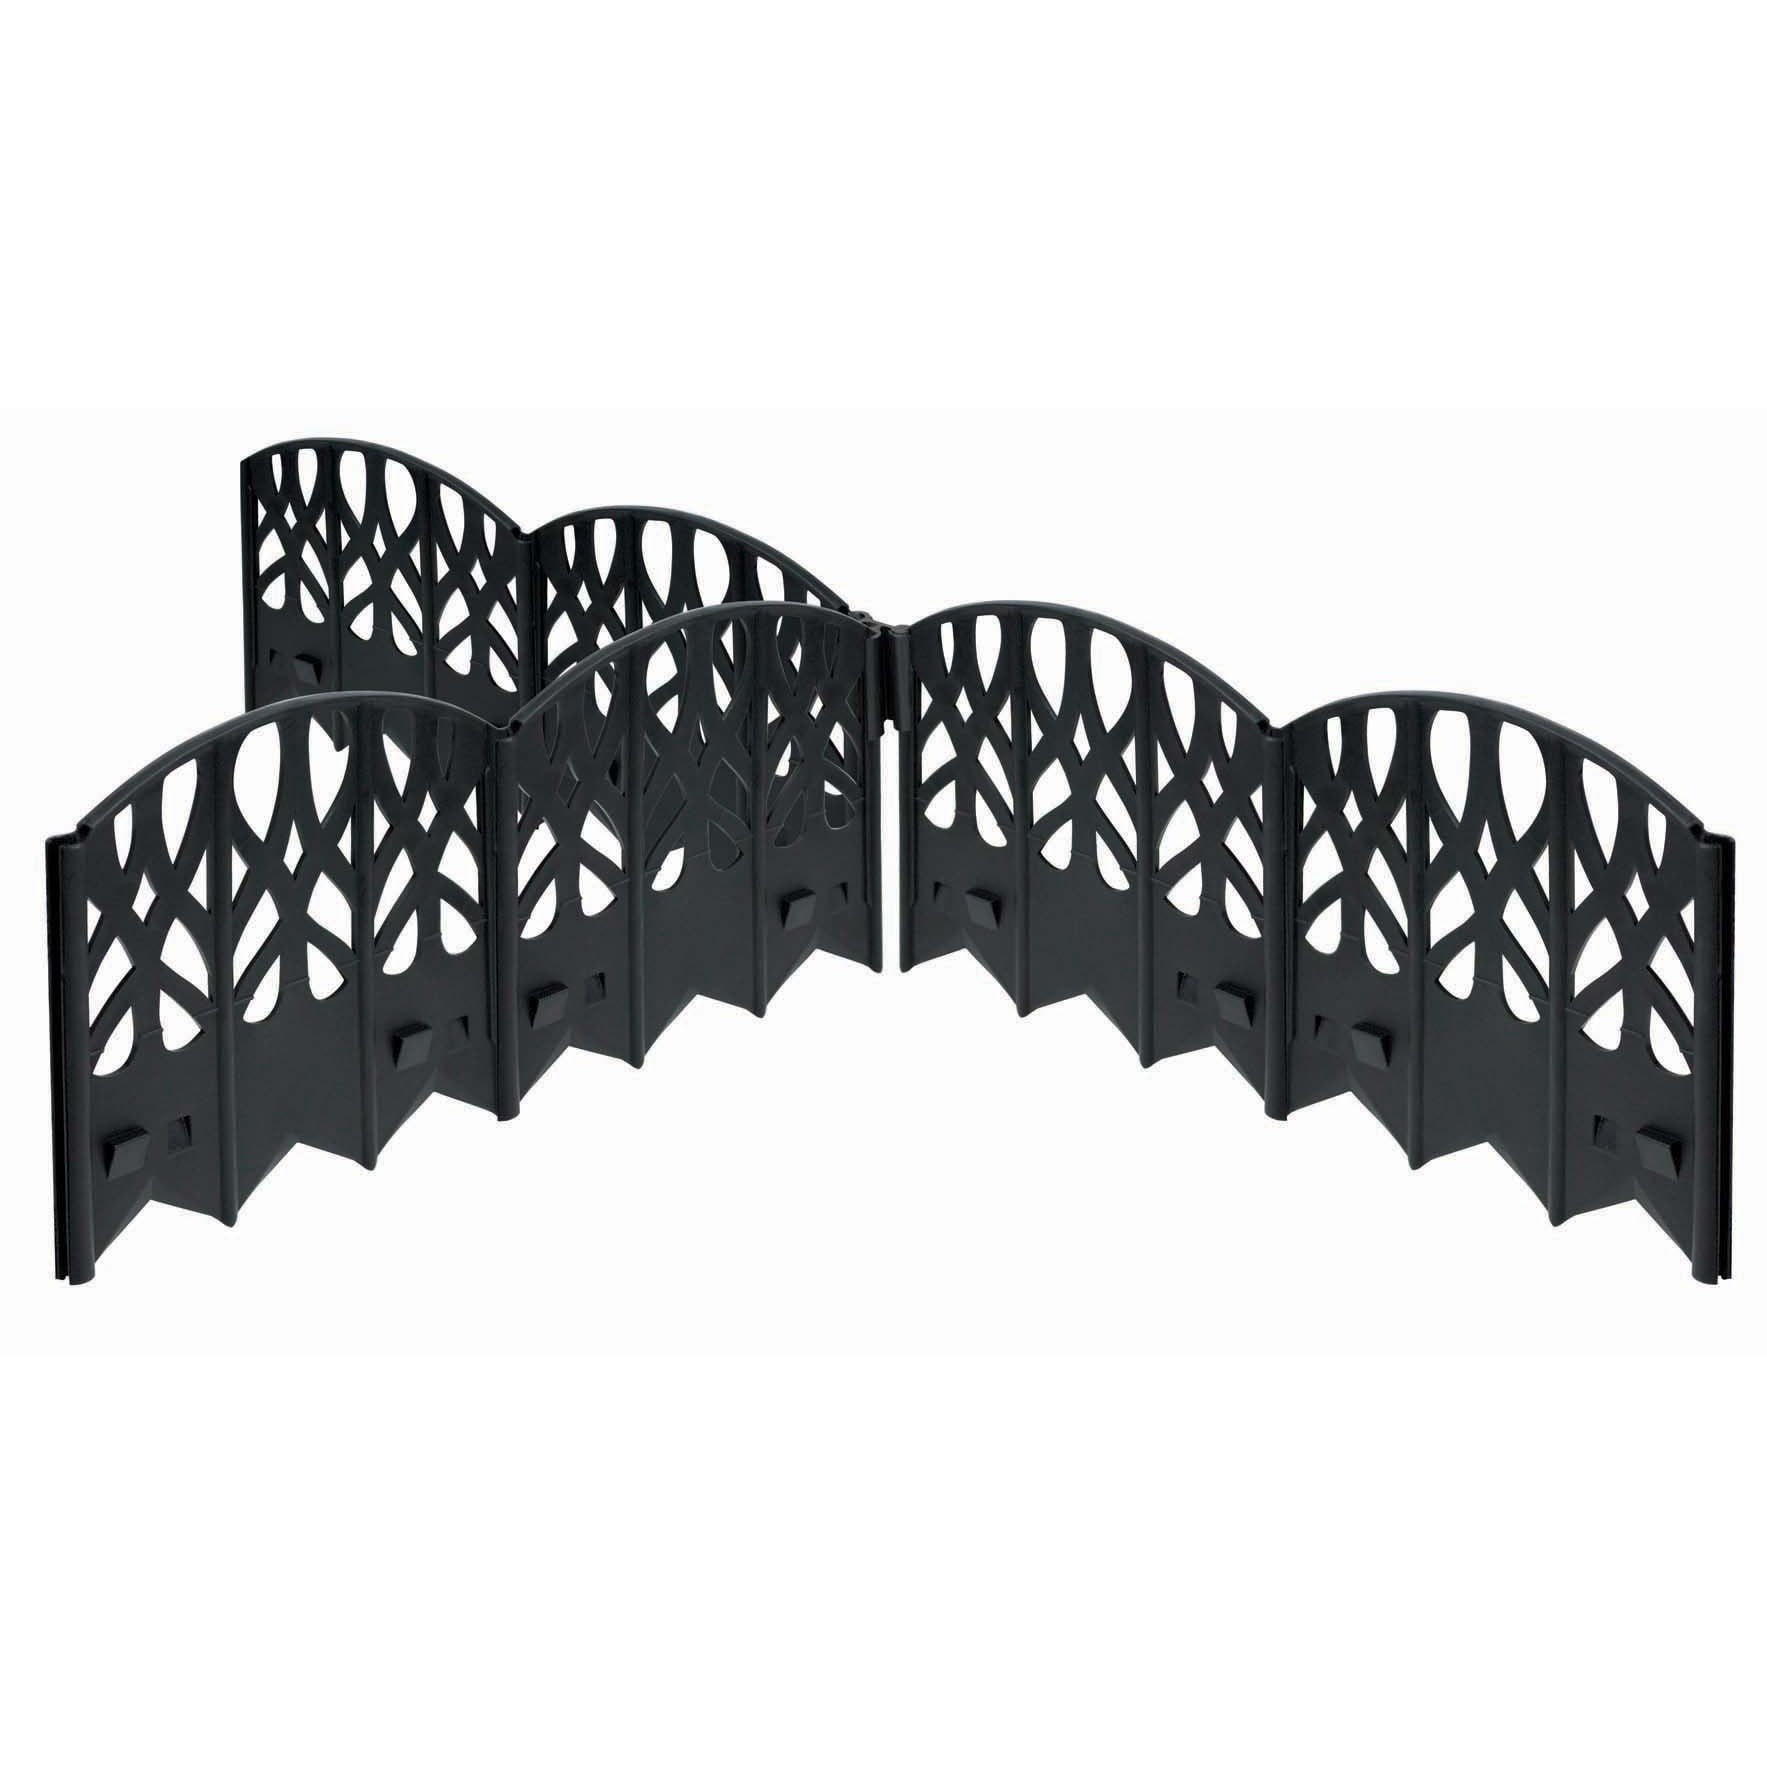 EMSCO Group 3020 20 feet Black Elegant Edging Landscape E...